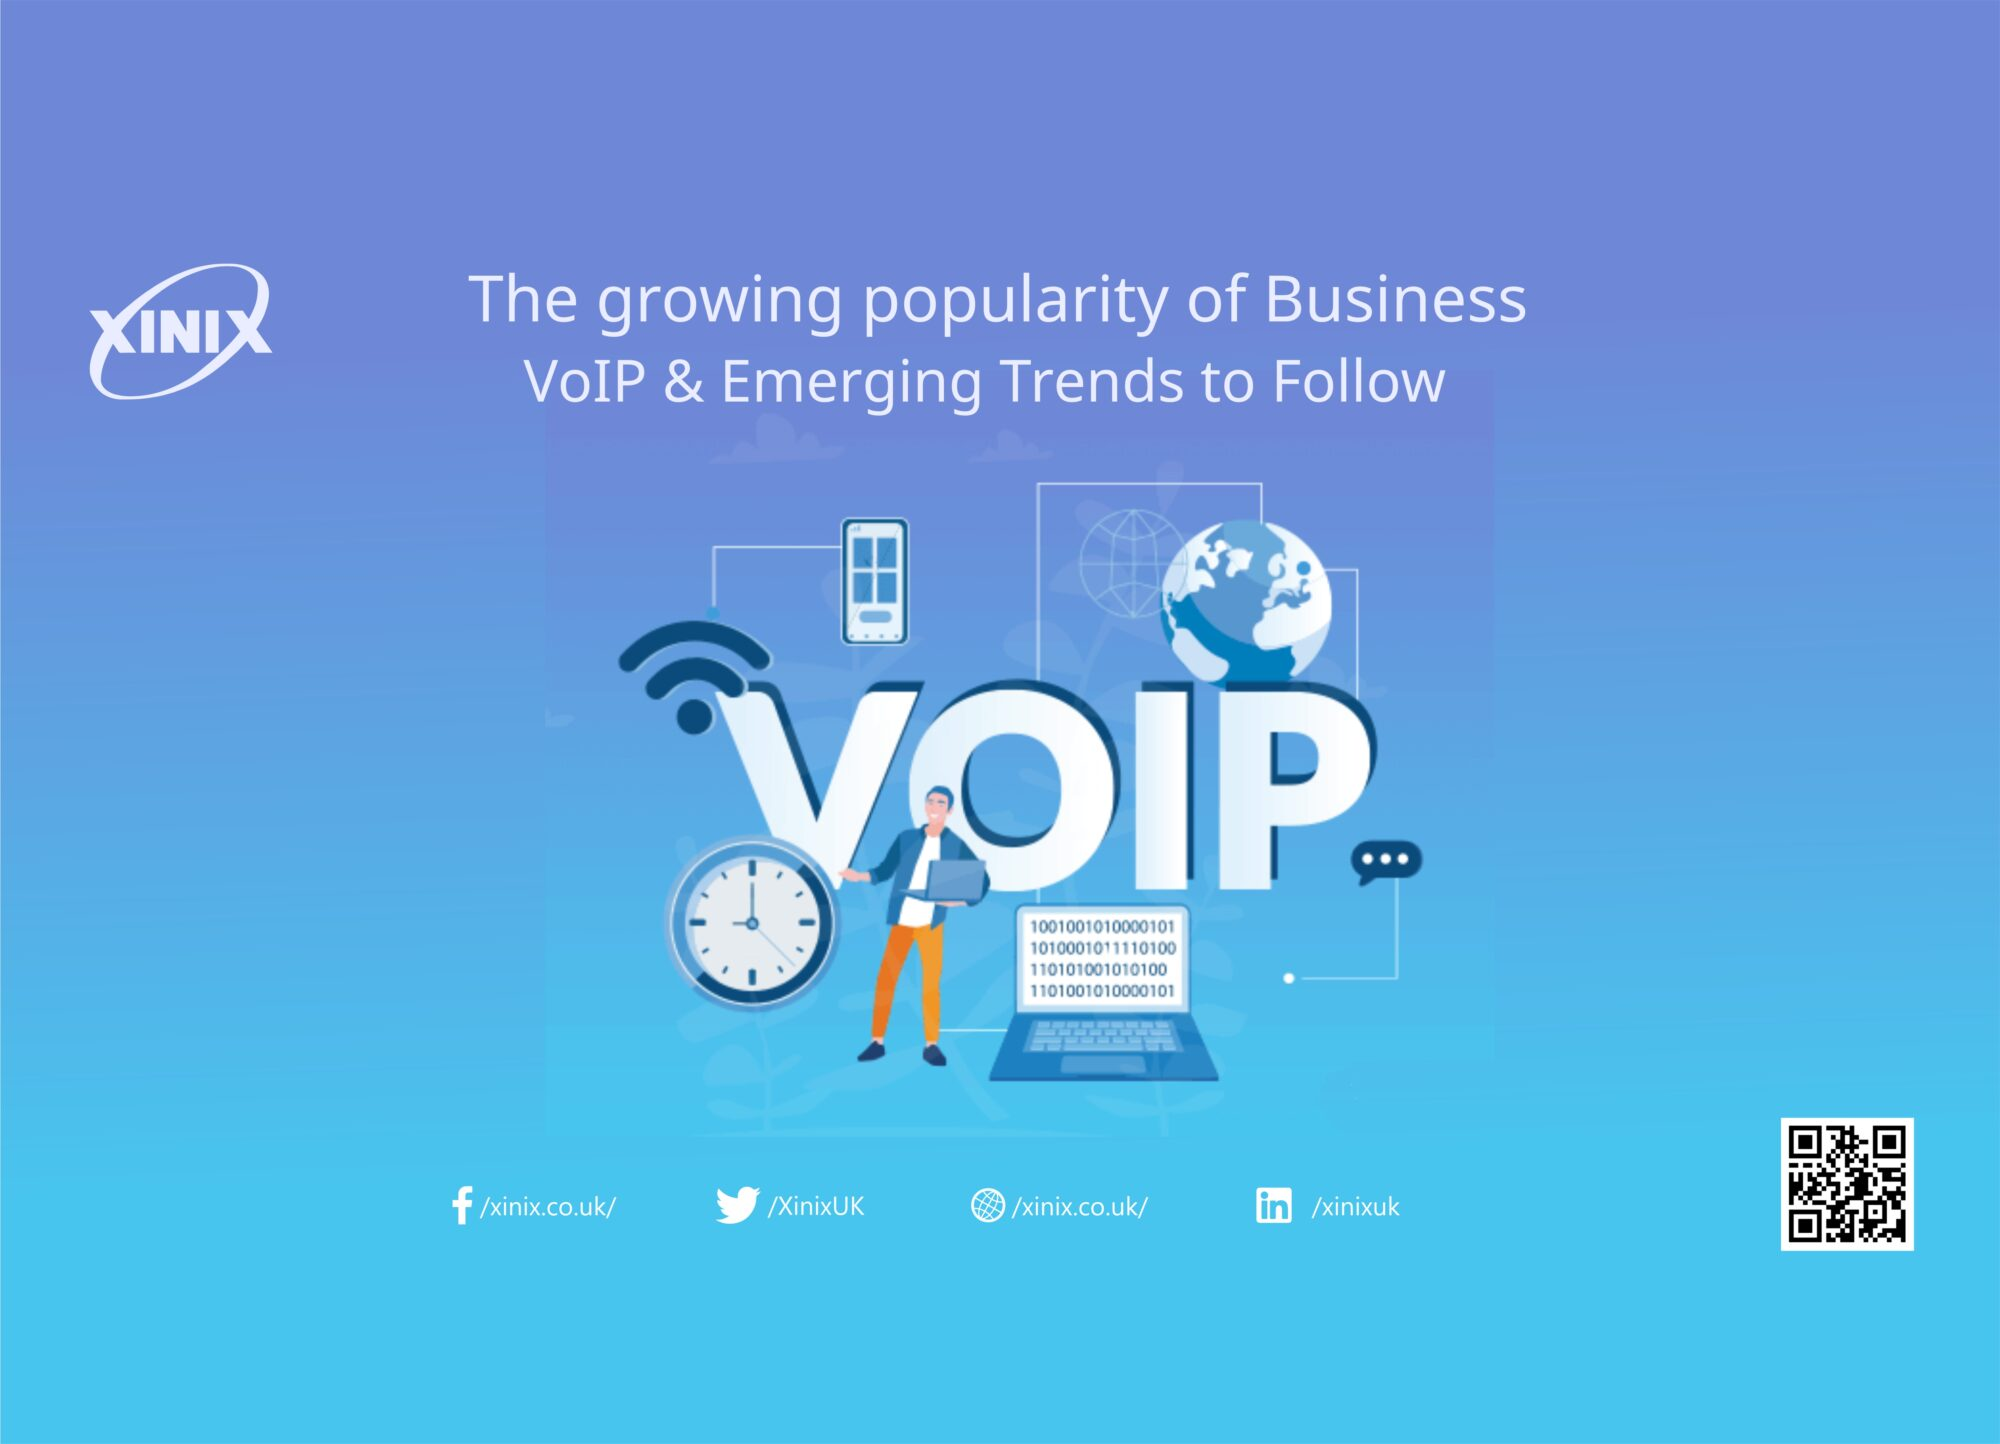 The growing popularity of Business VoIP & Emerging Trends to Follow